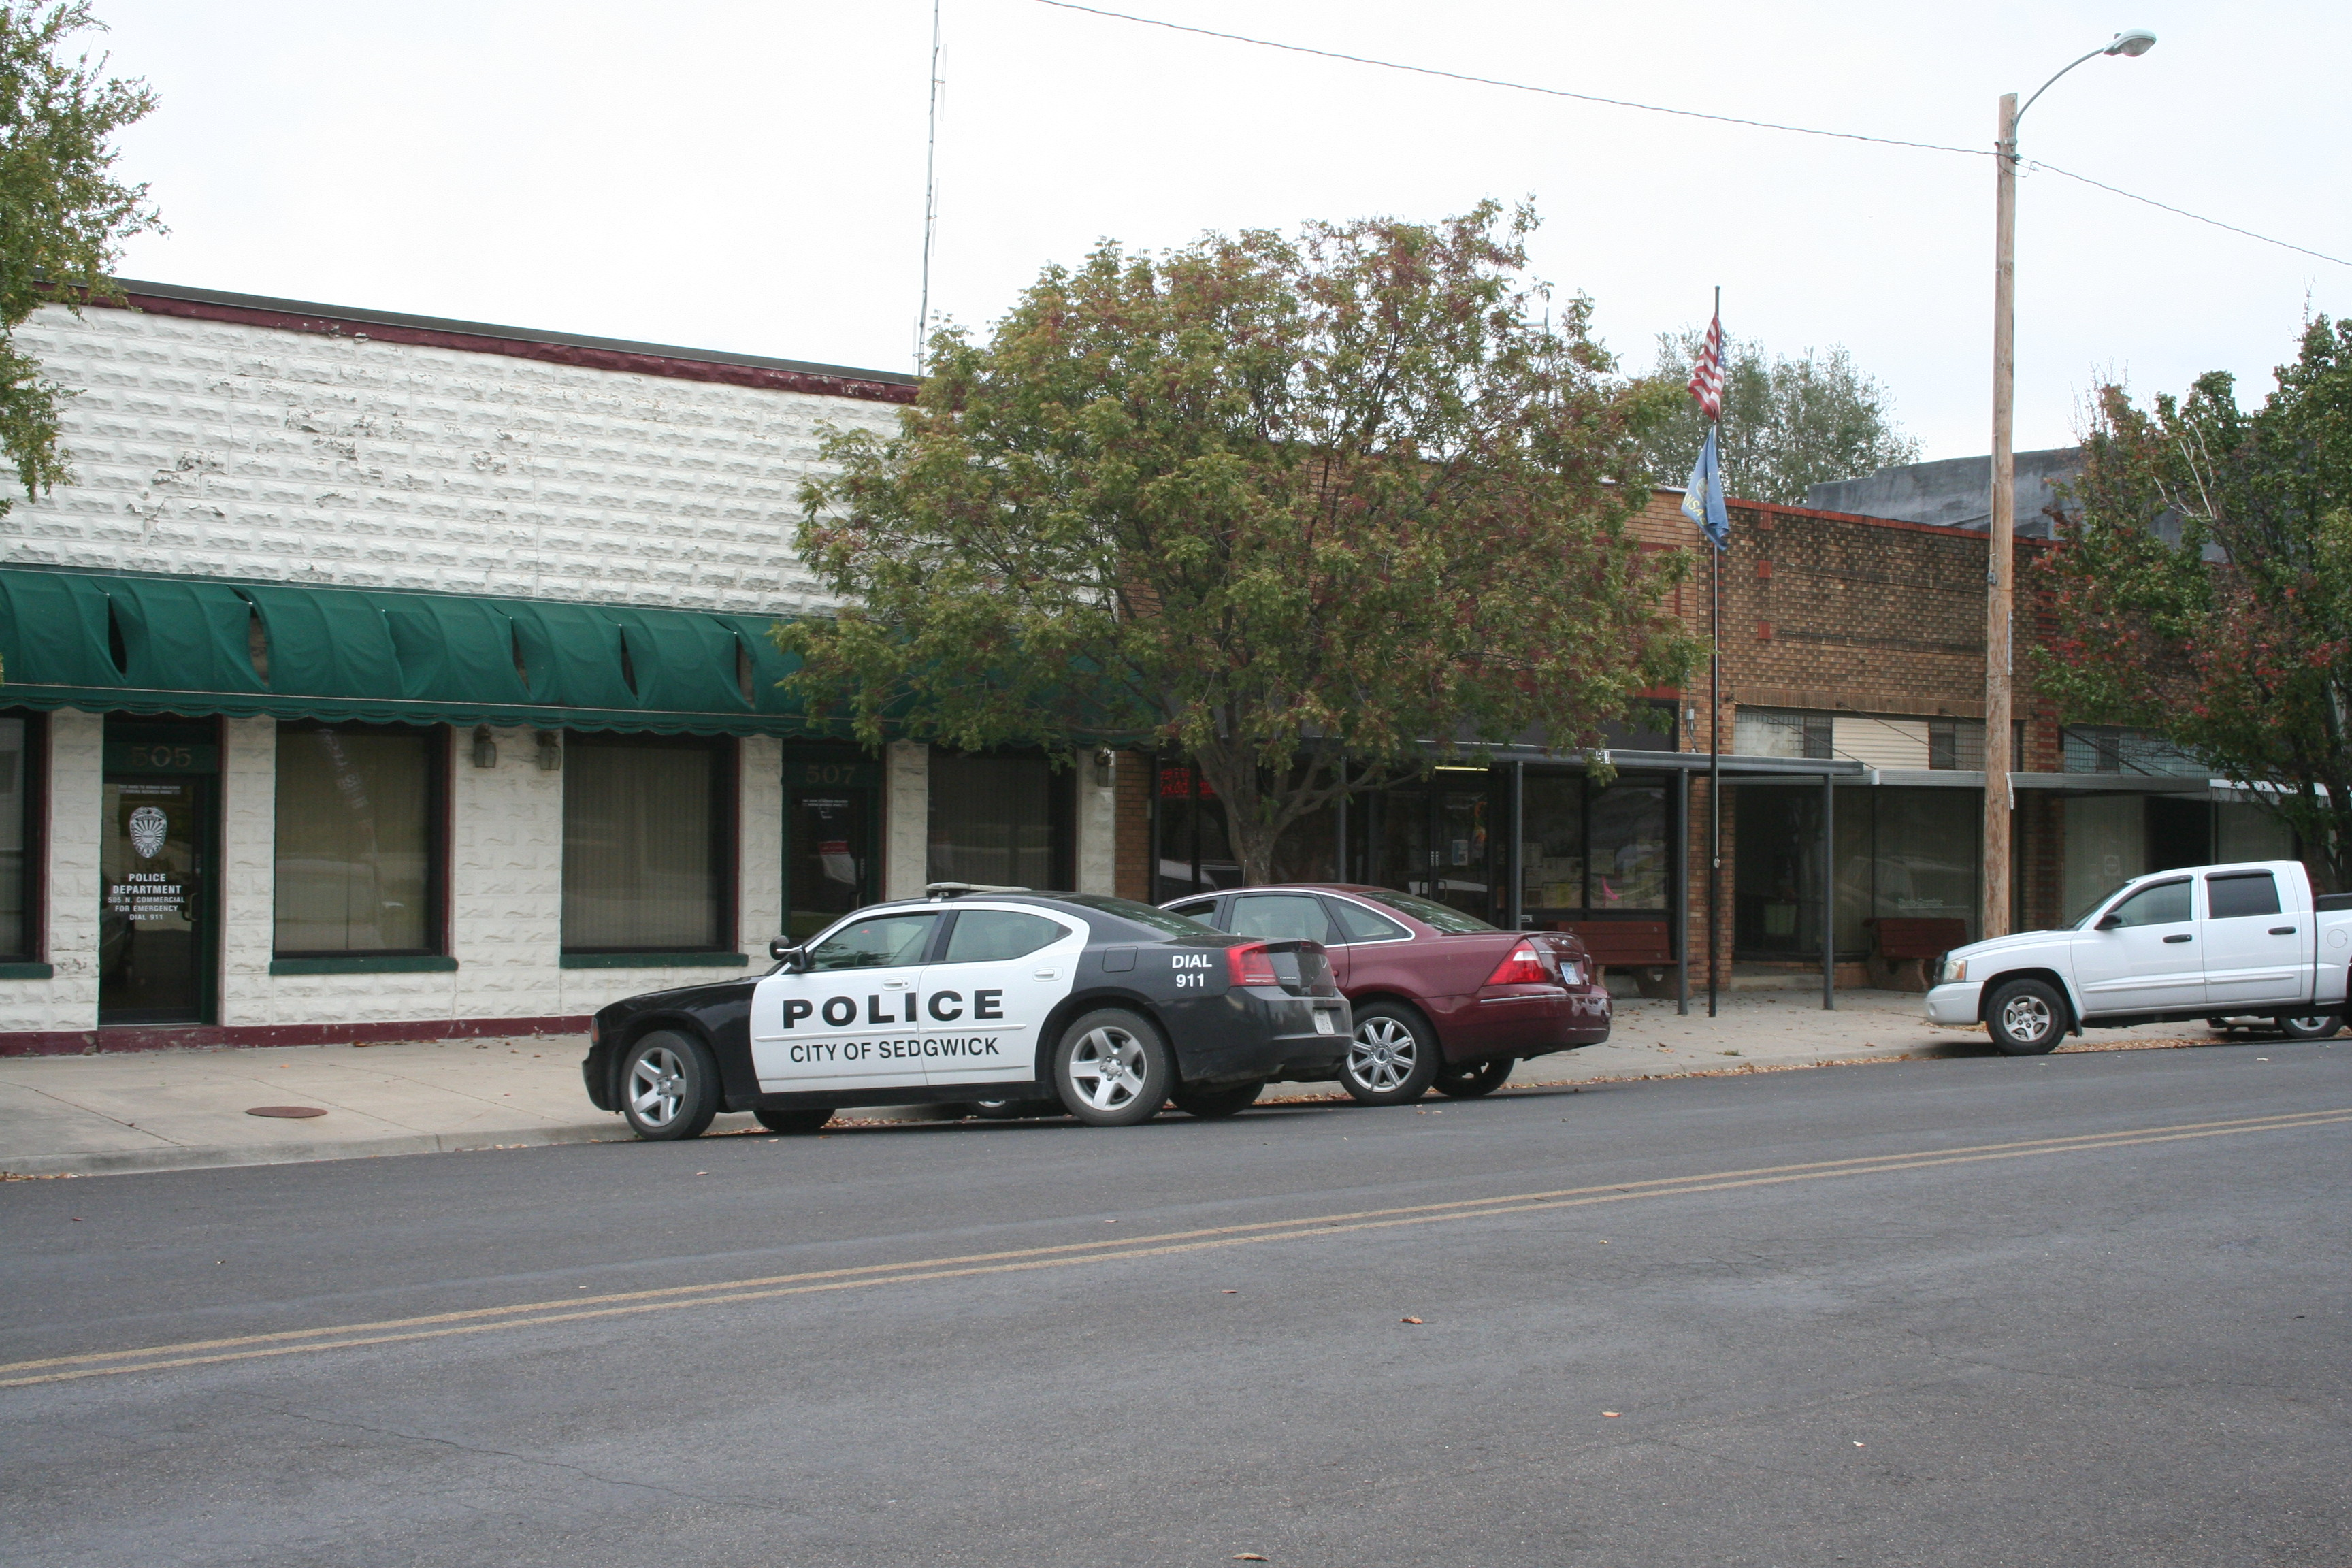 City of sedgwick city hall-police-community bldg